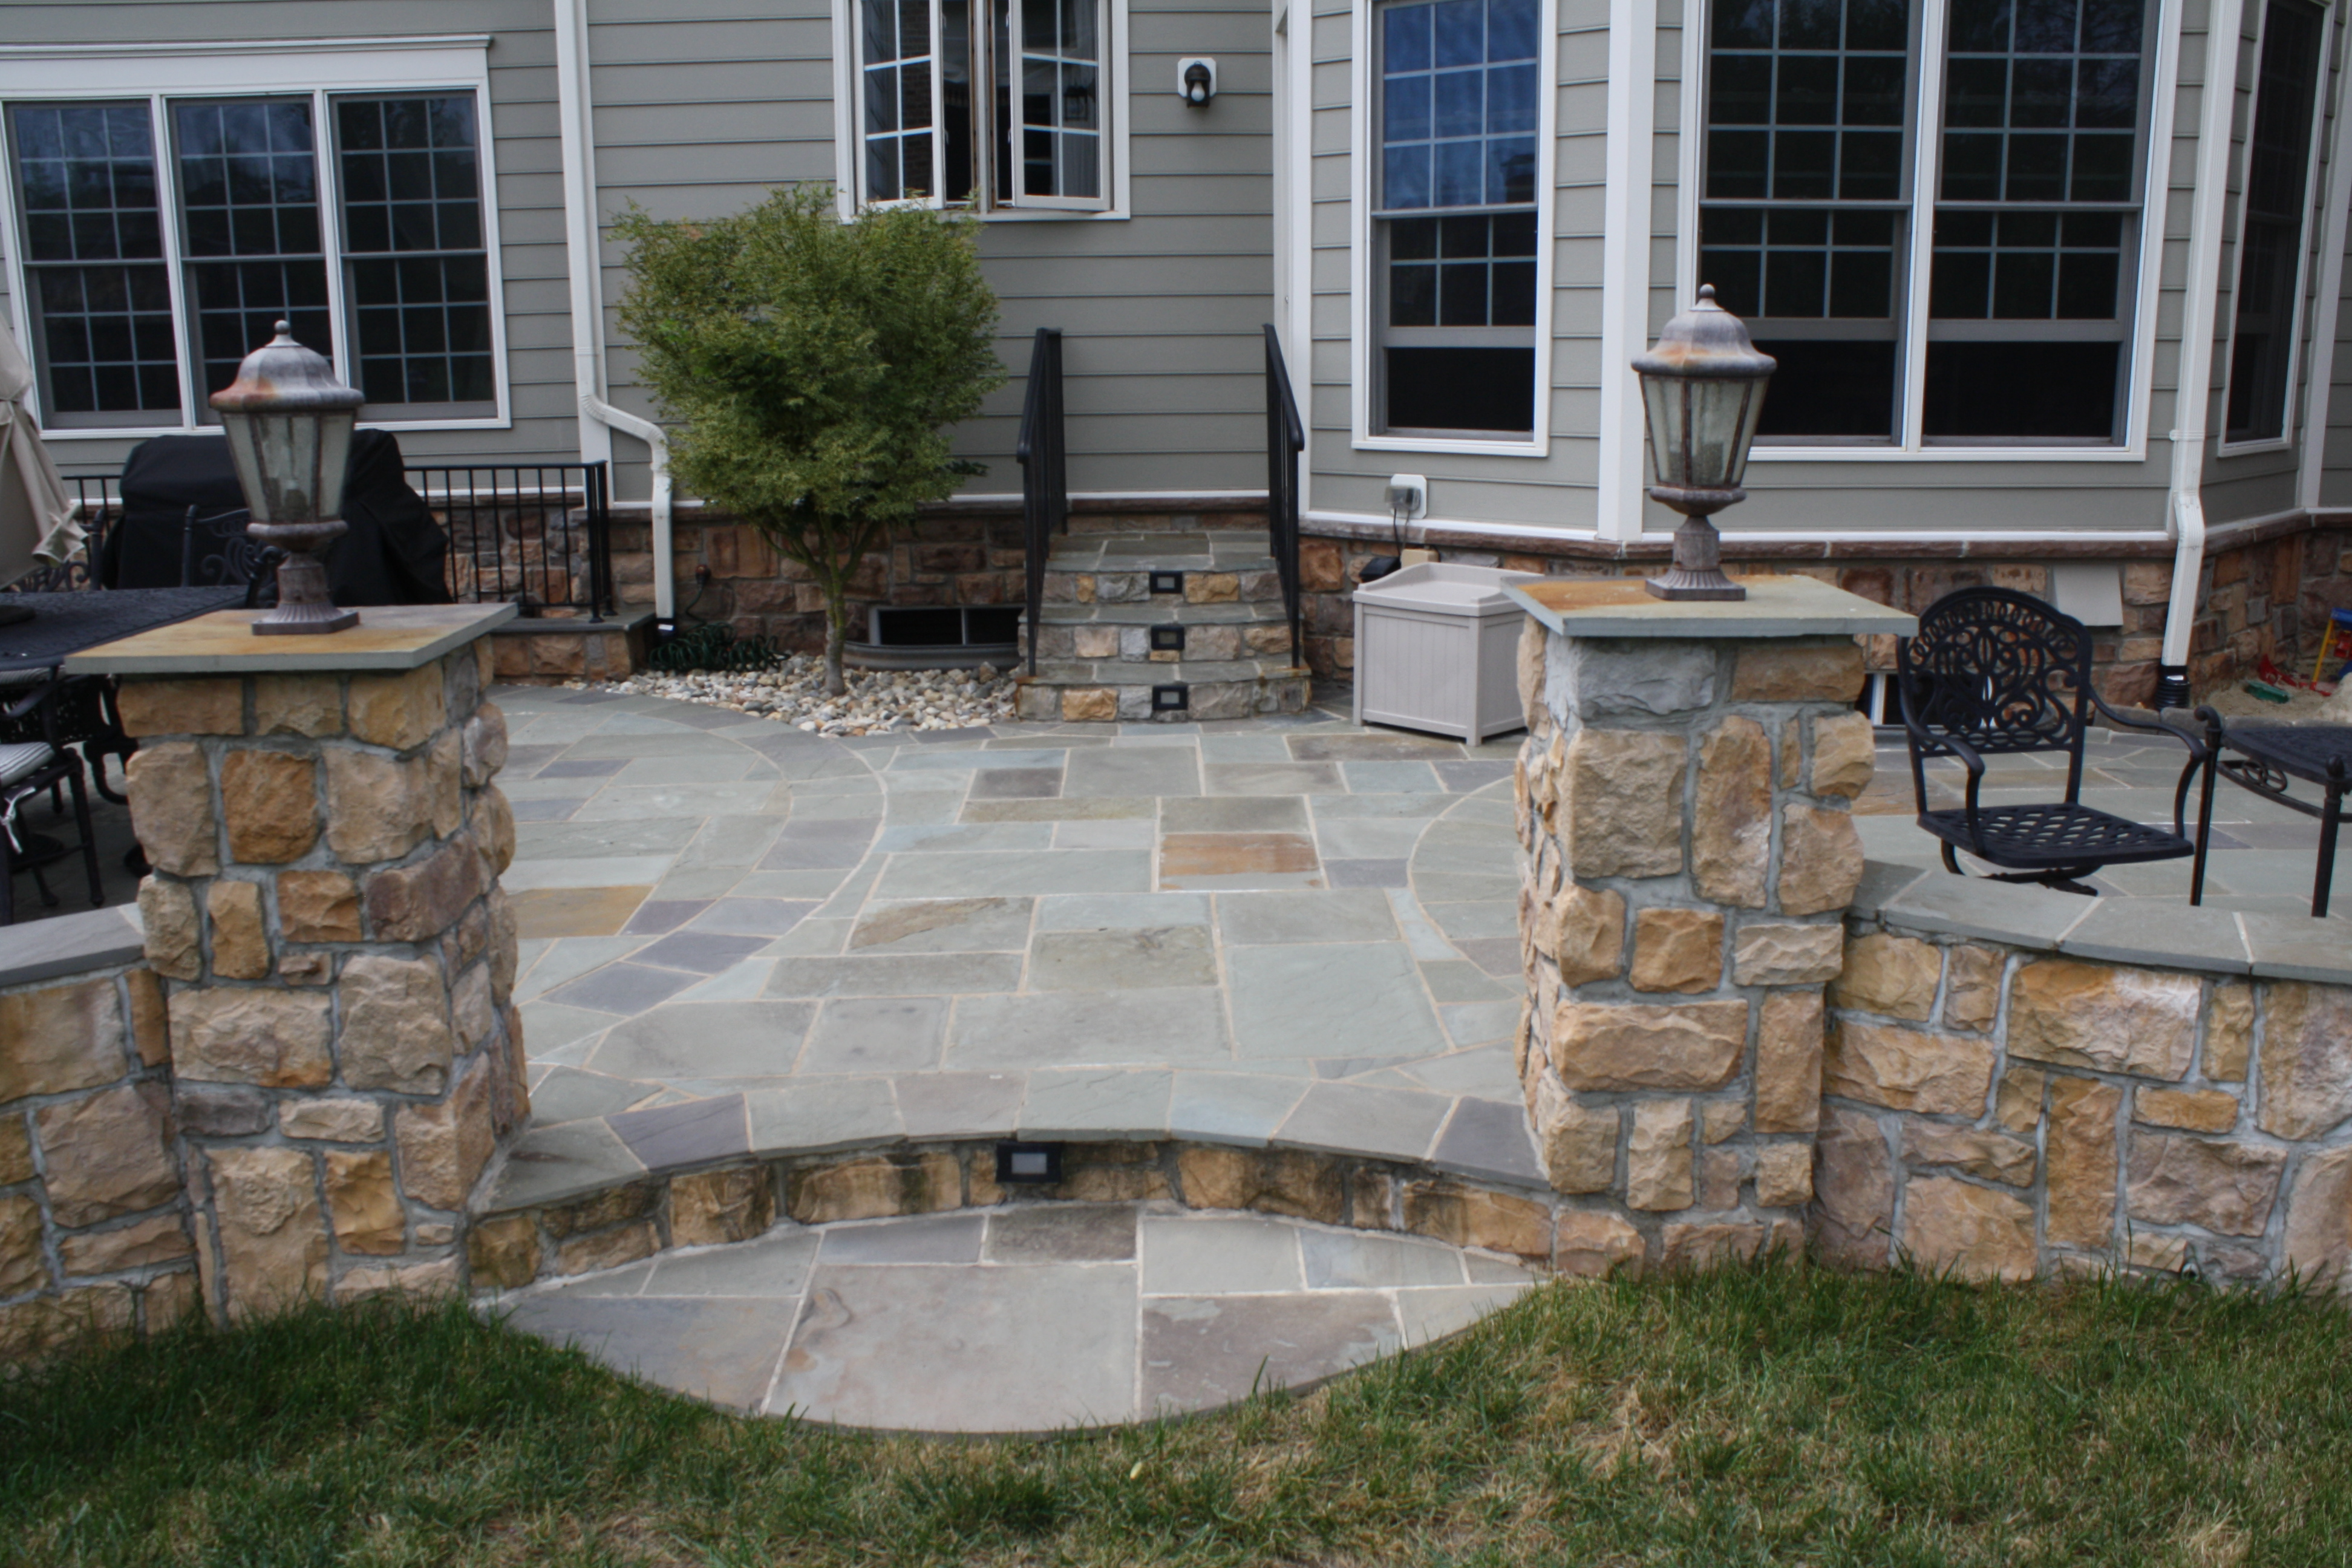 of what patios polymeric slate between stone or dust sand to joints patio flagstone luxury put